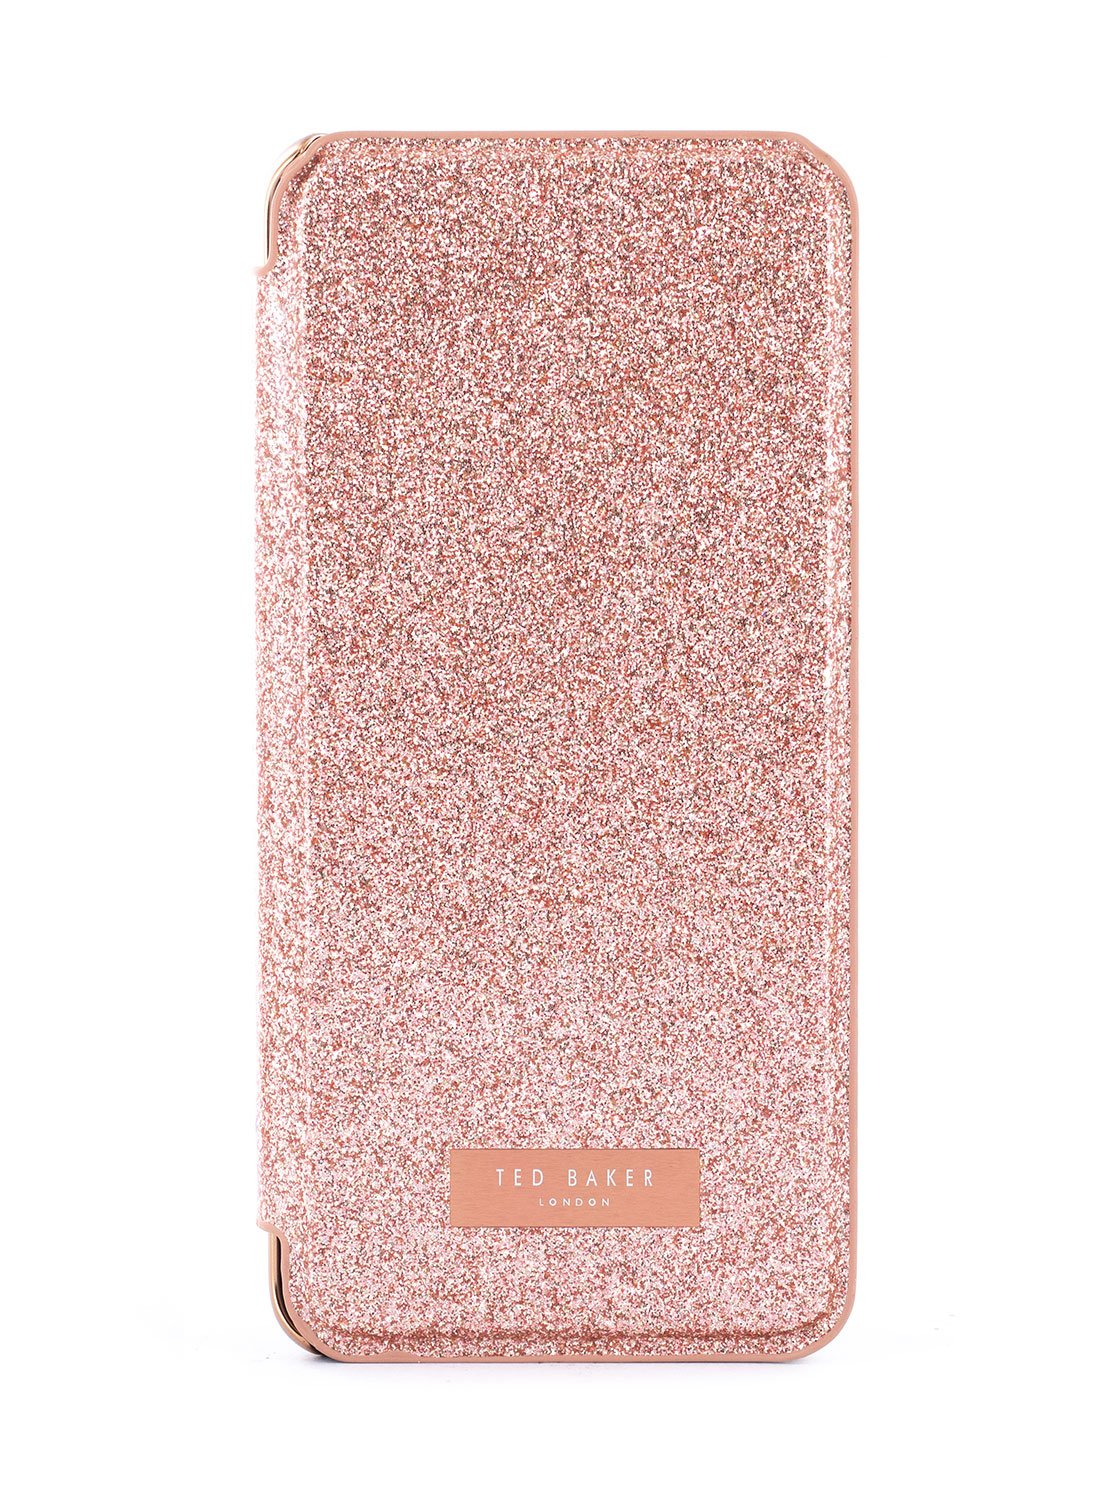 Hero image of the Ted Baker Samsung Galaxy S9 phone case in Rose Gold